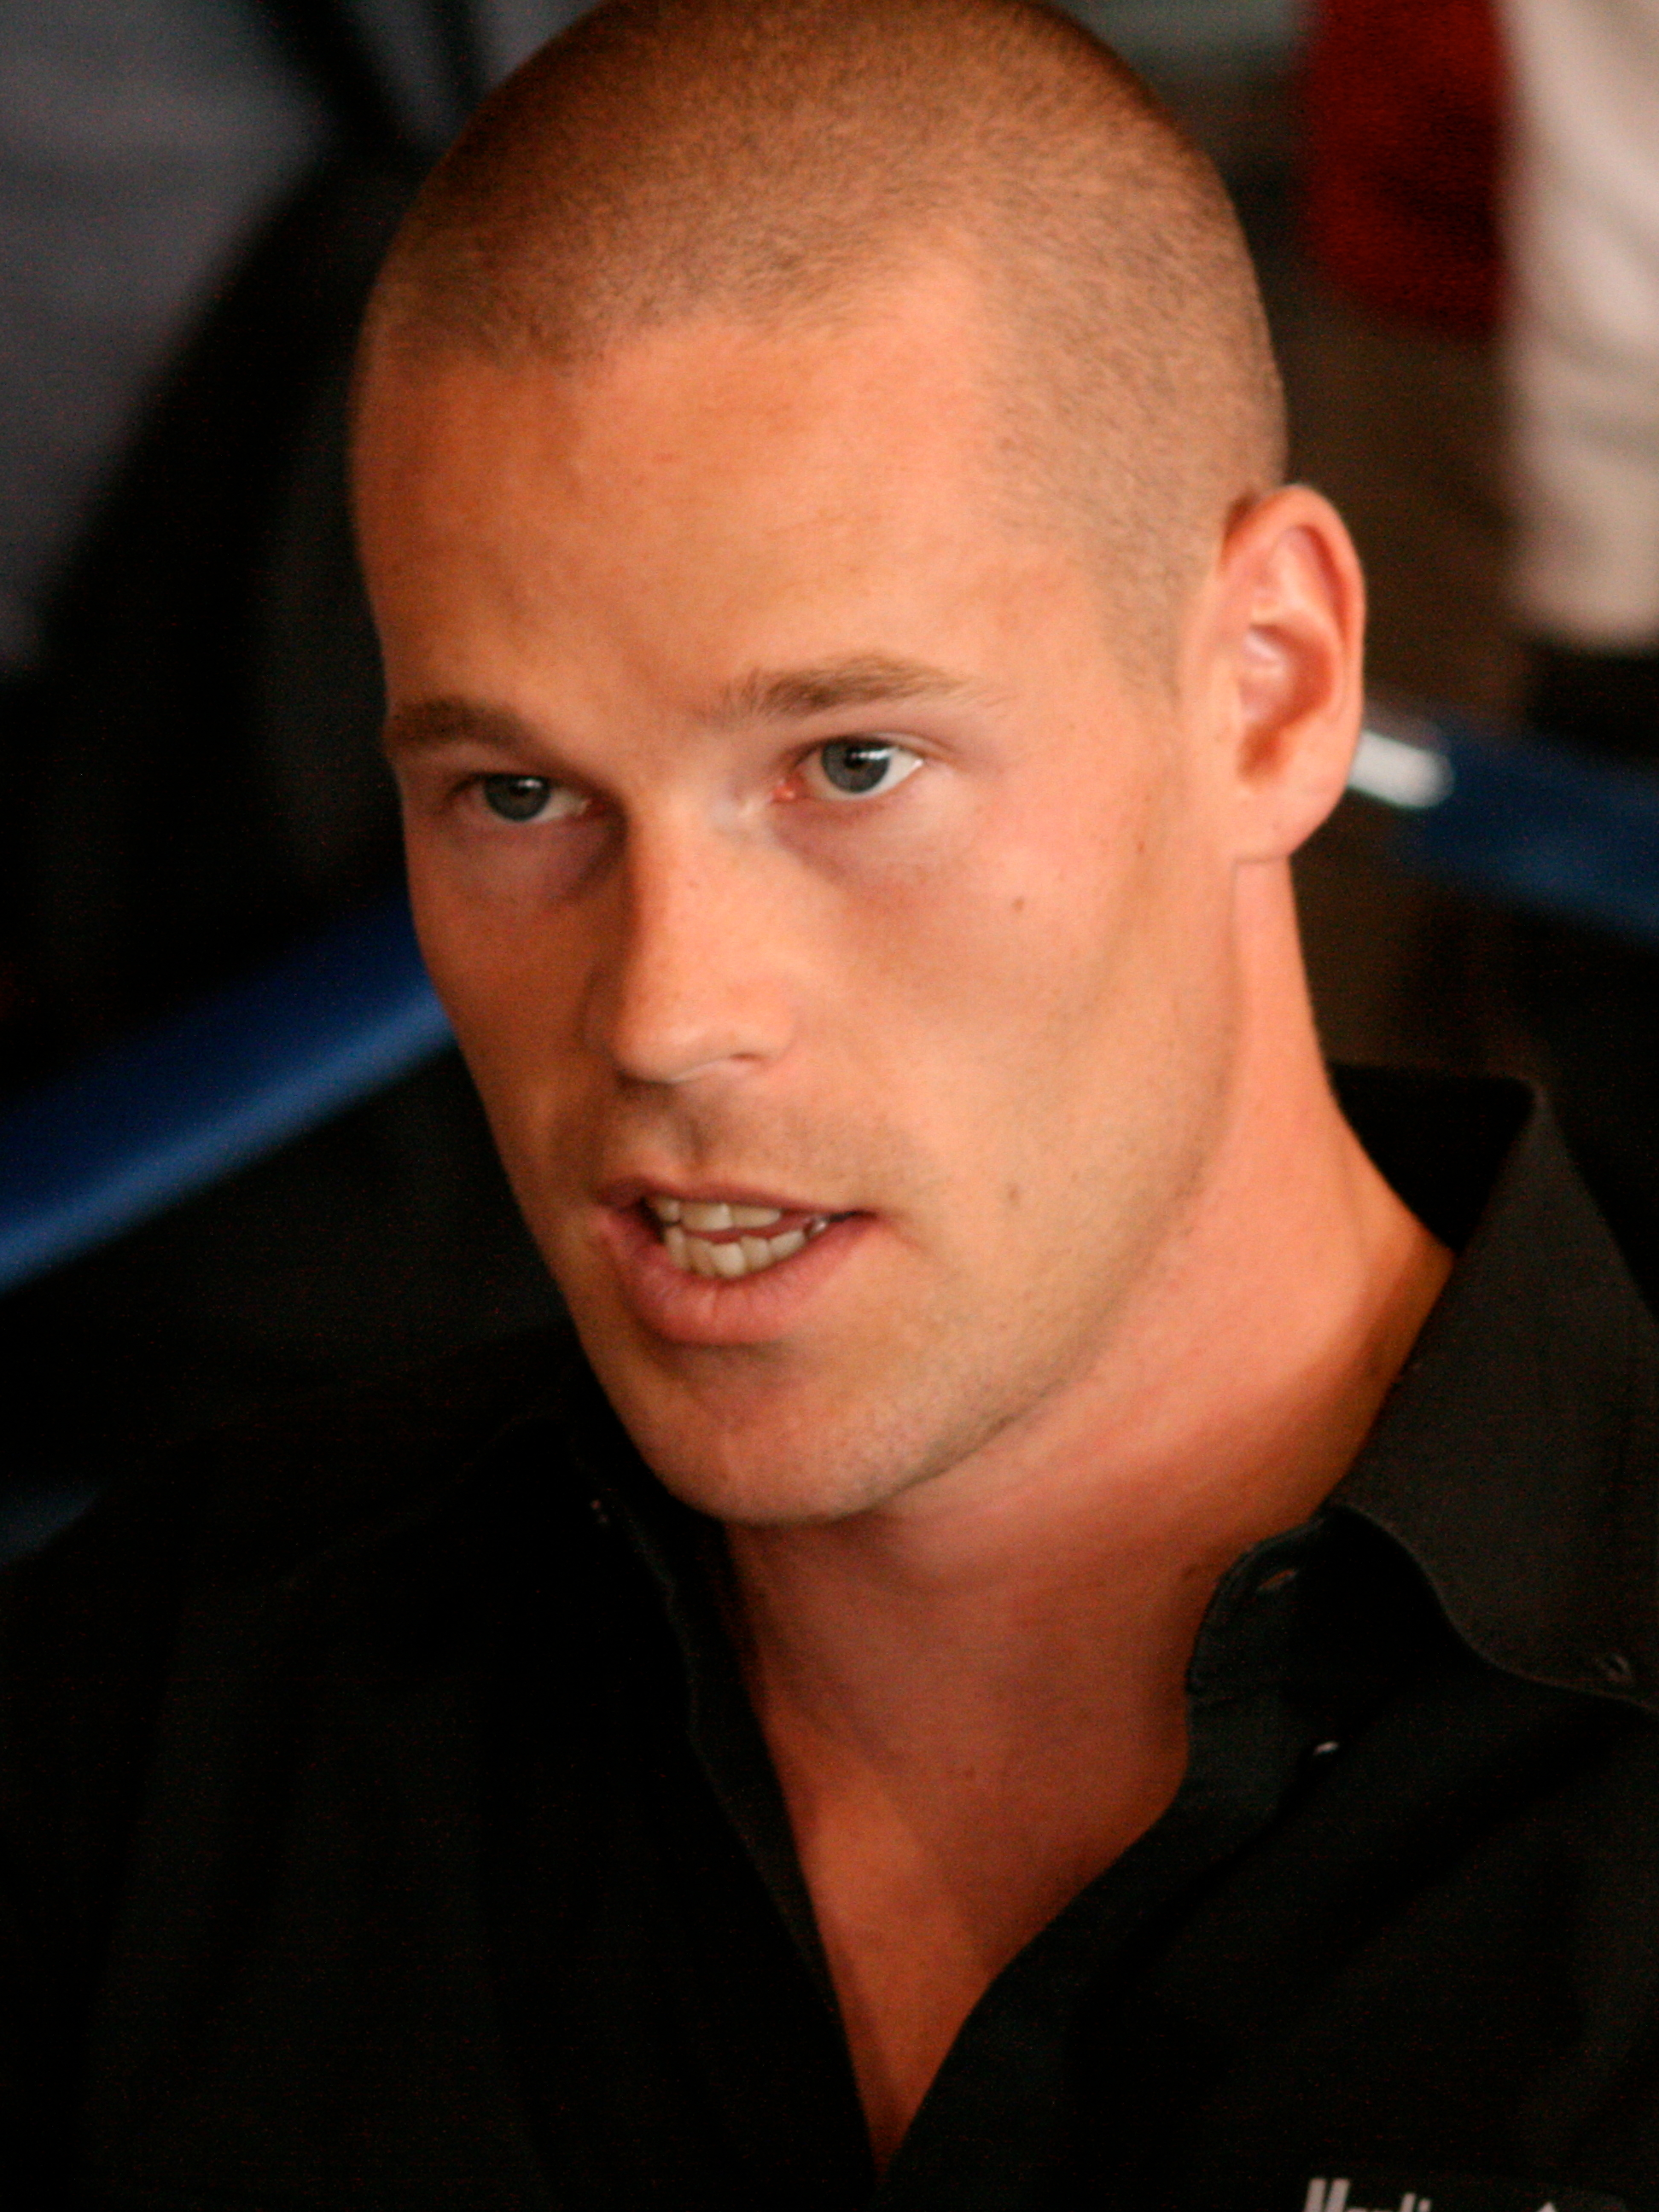 https://upload.wikimedia.org/wikipedia/commons/7/71/Patrik_Antonius_2008.jpg